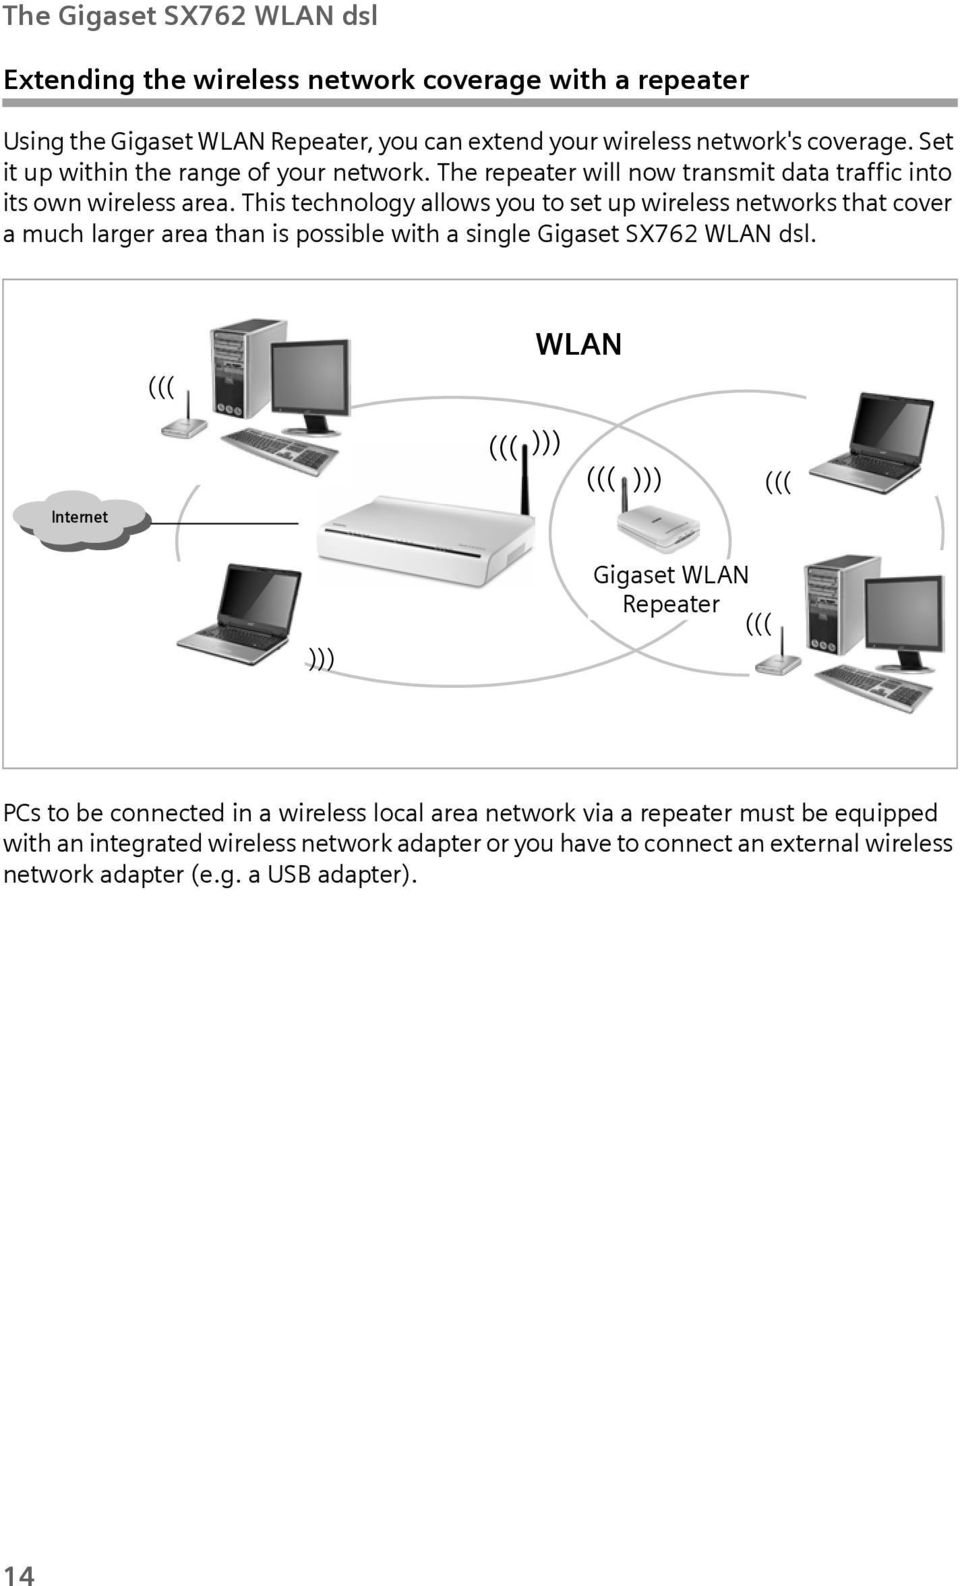 This technology allows you to set up wireless networks that cover a much larger area than is possible with a single Gigaset SX762 WLAN dsl.